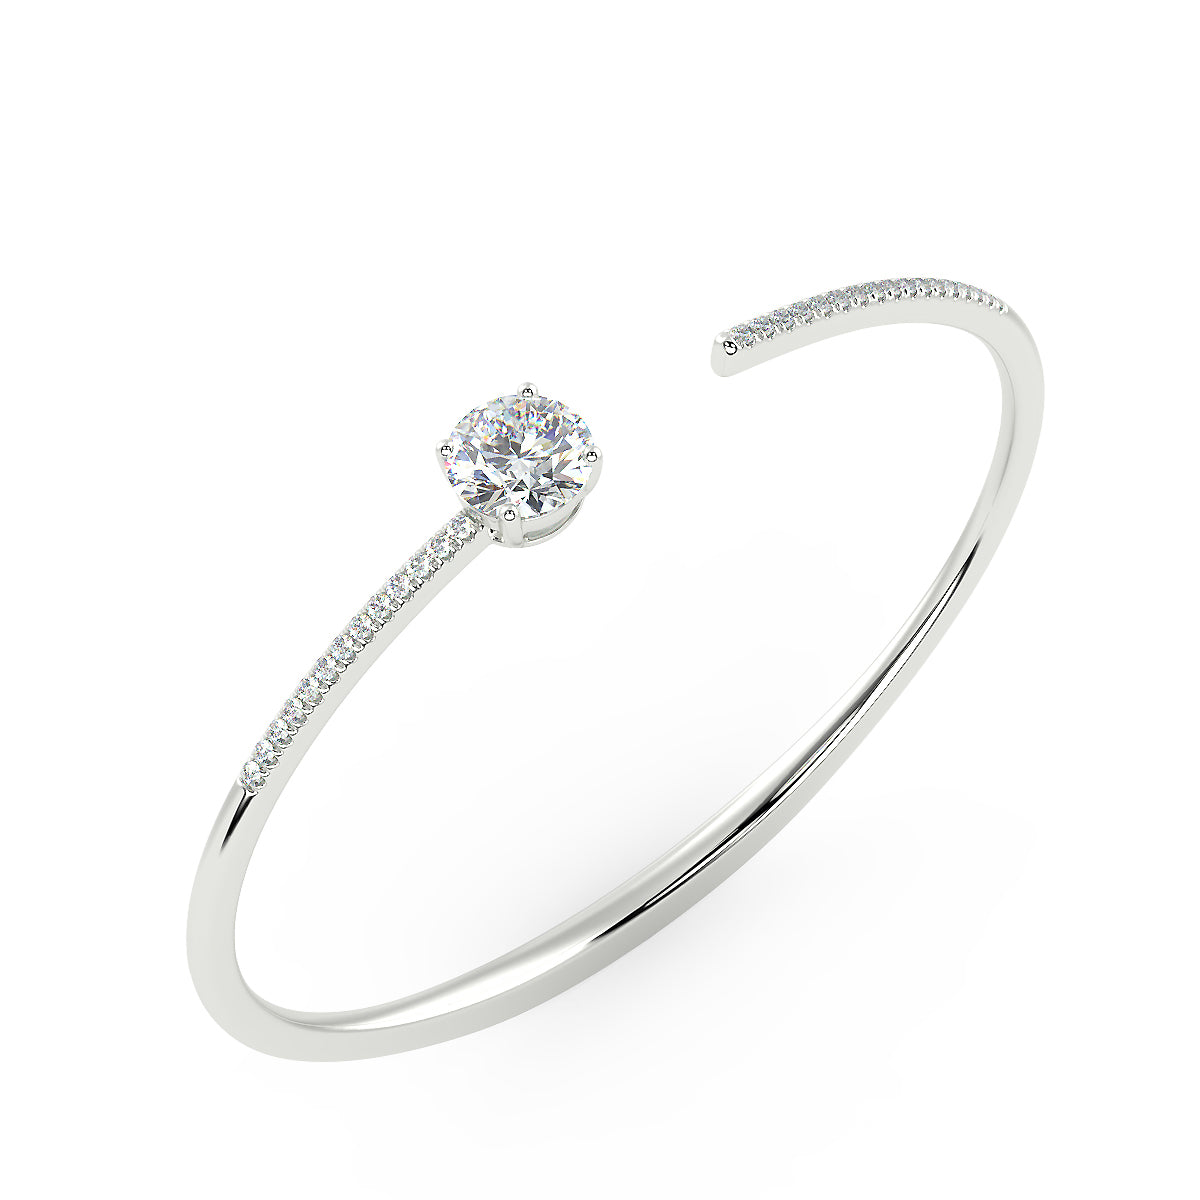 Comet Bangle in 14K White Gold (1.92 Ct. Tw.)